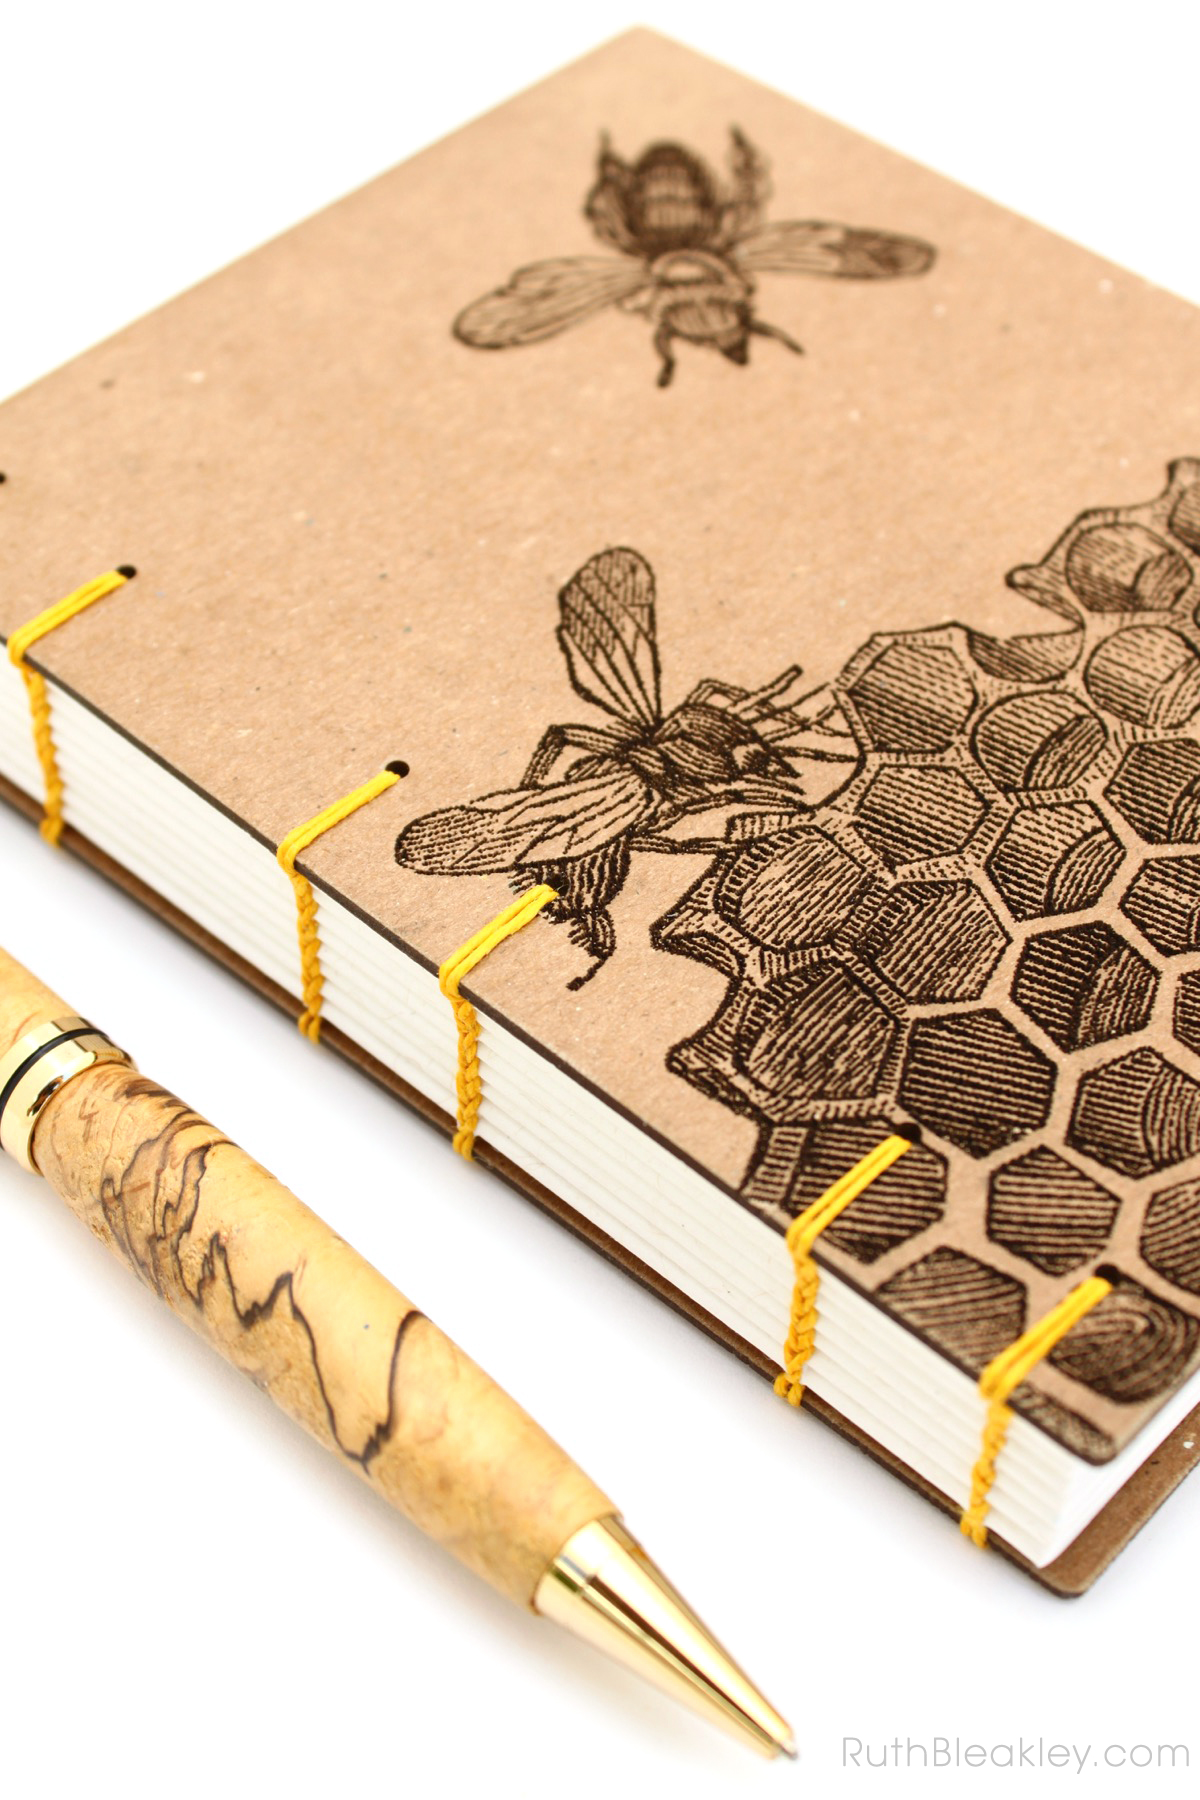 Honeybee Handmade Journal made by Ruth Bleakley with Laser Engraving - 2